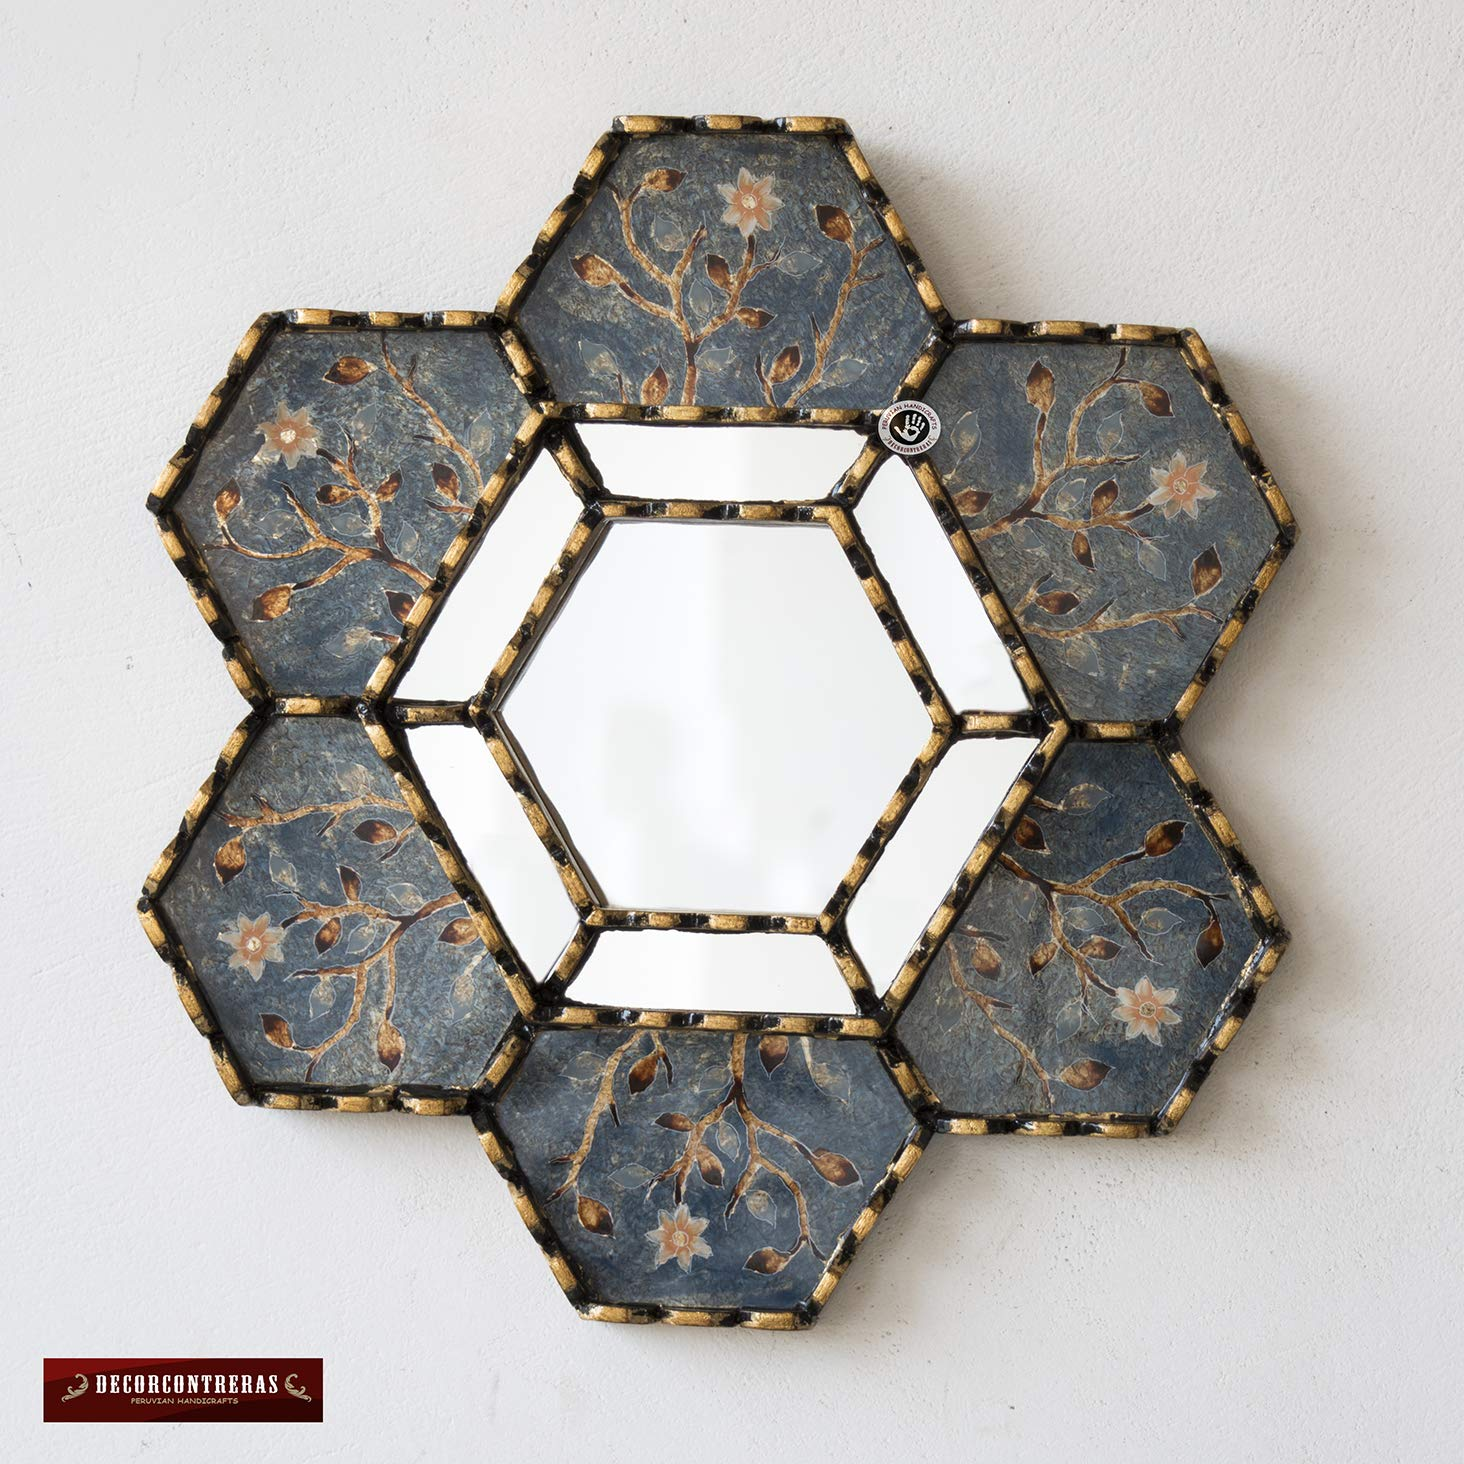 Handpained glass mirror 11.8 for wall art decor Peruvian Accent Hexagon Accent Wall Mirrors set 3 Small Decorative Accent Mirror with gold leaf,Colorful Blossoms